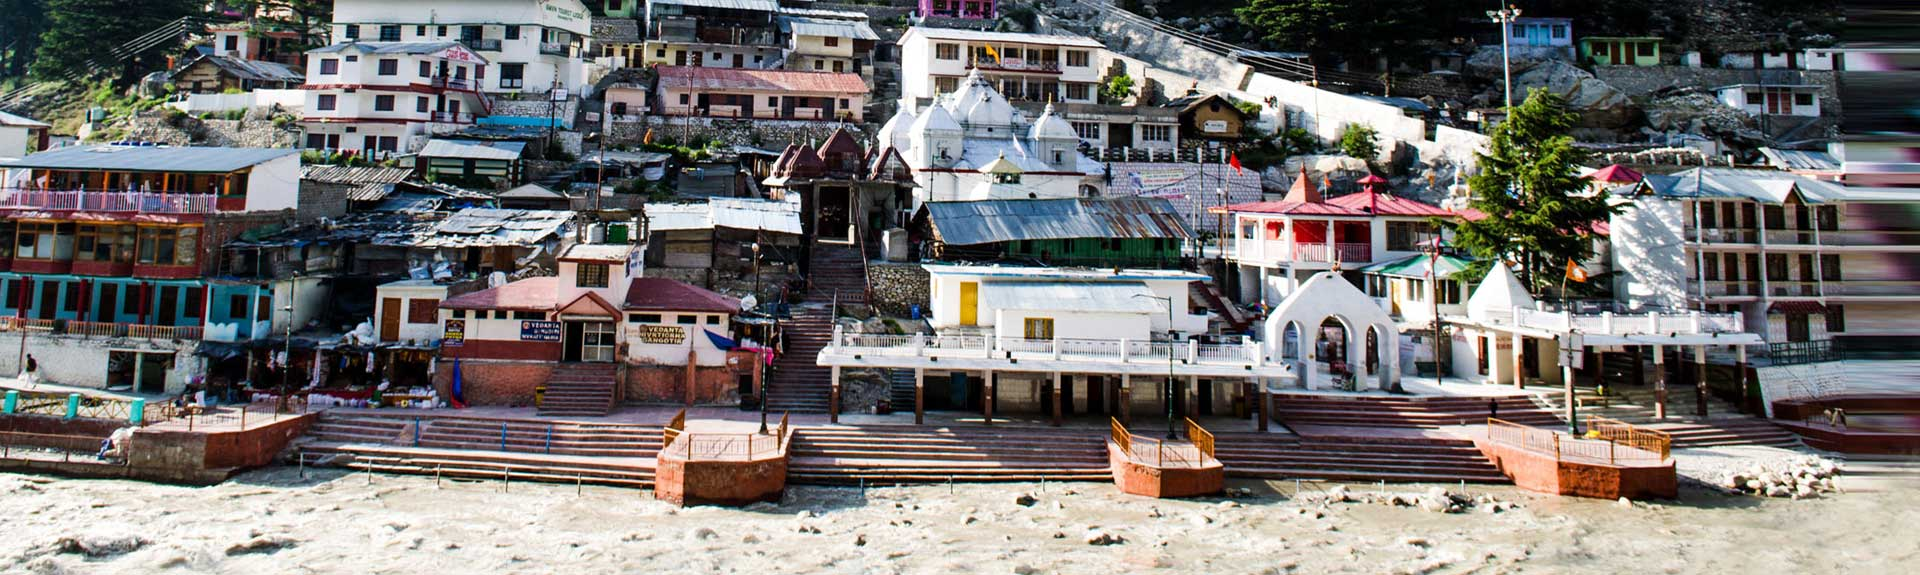 chardham tourism for best chardham yatra package